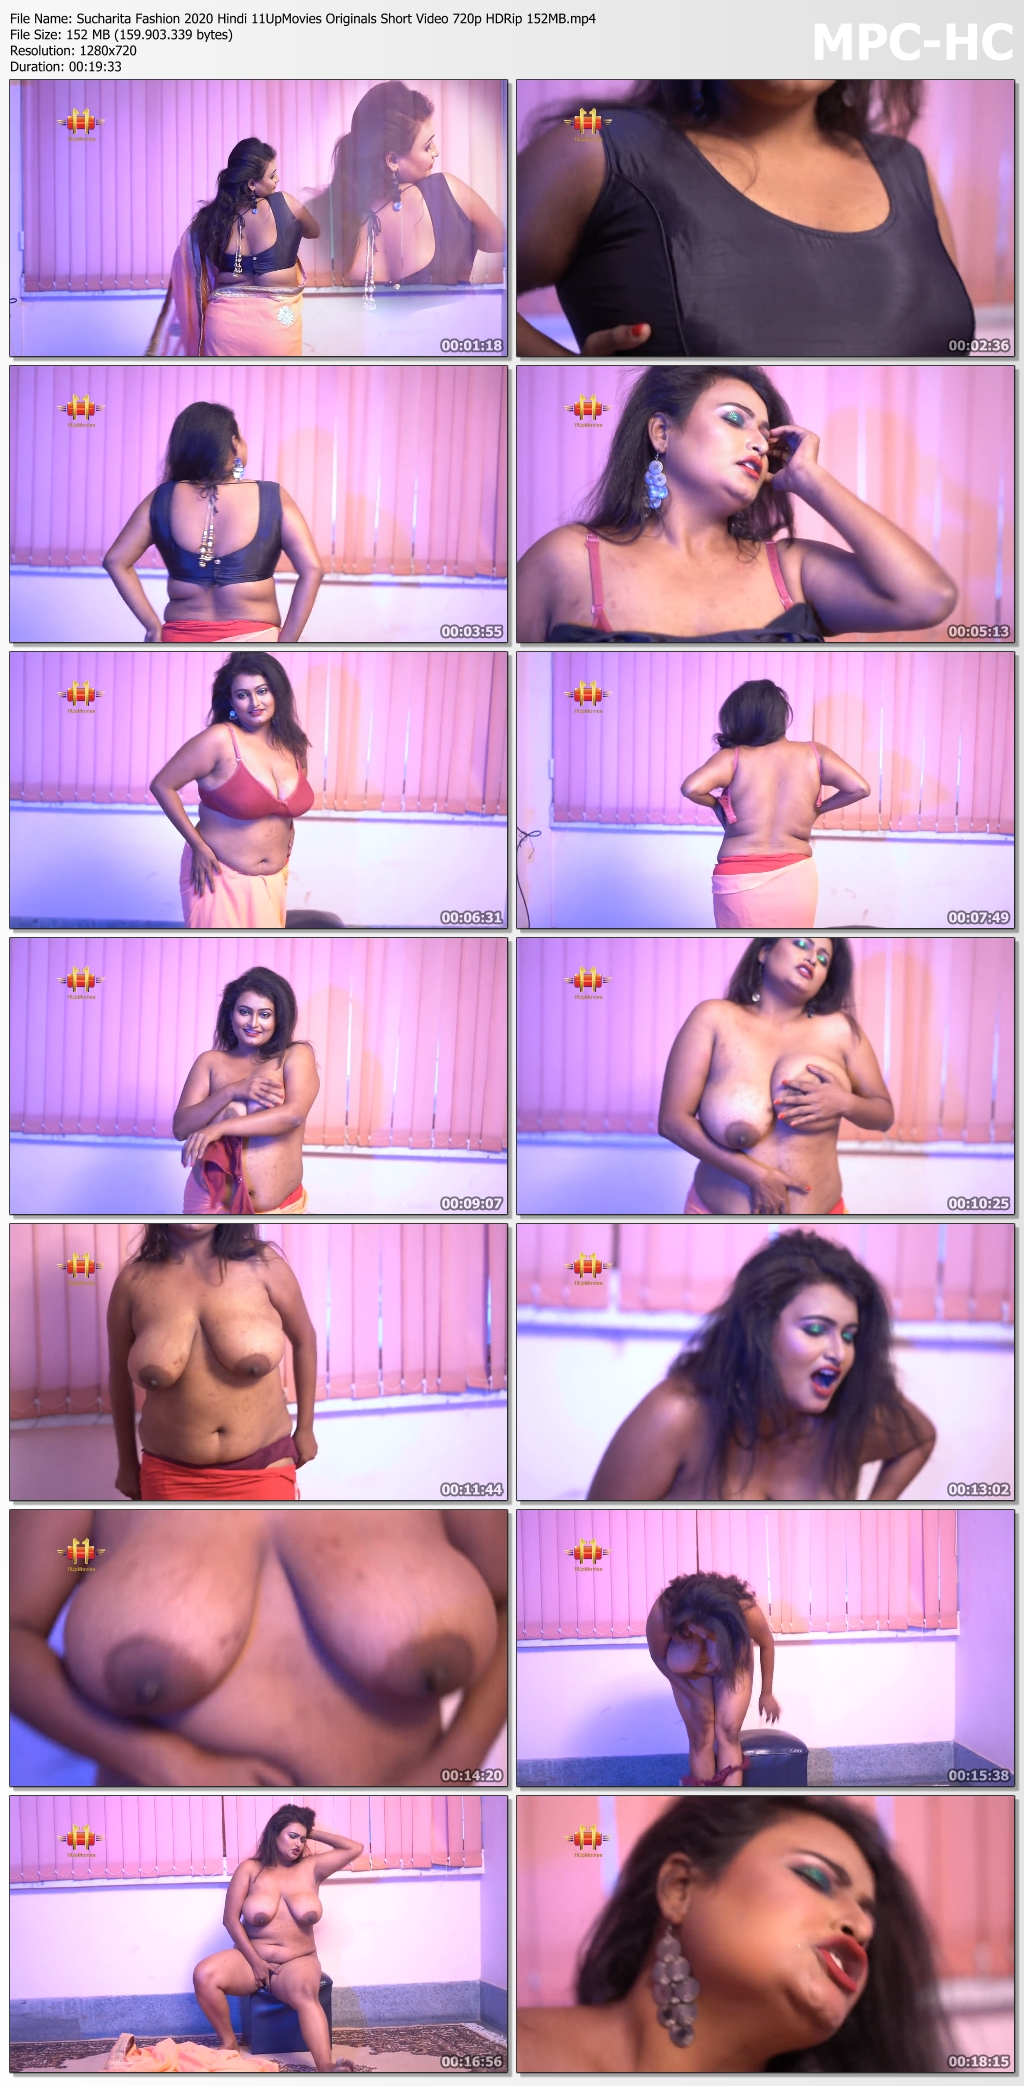 Sucharita-Fashion-2020-Hindi-11-Up-Movies-Originals-Short-Video-720p-HDRip-152-MB-mp4-thumbs